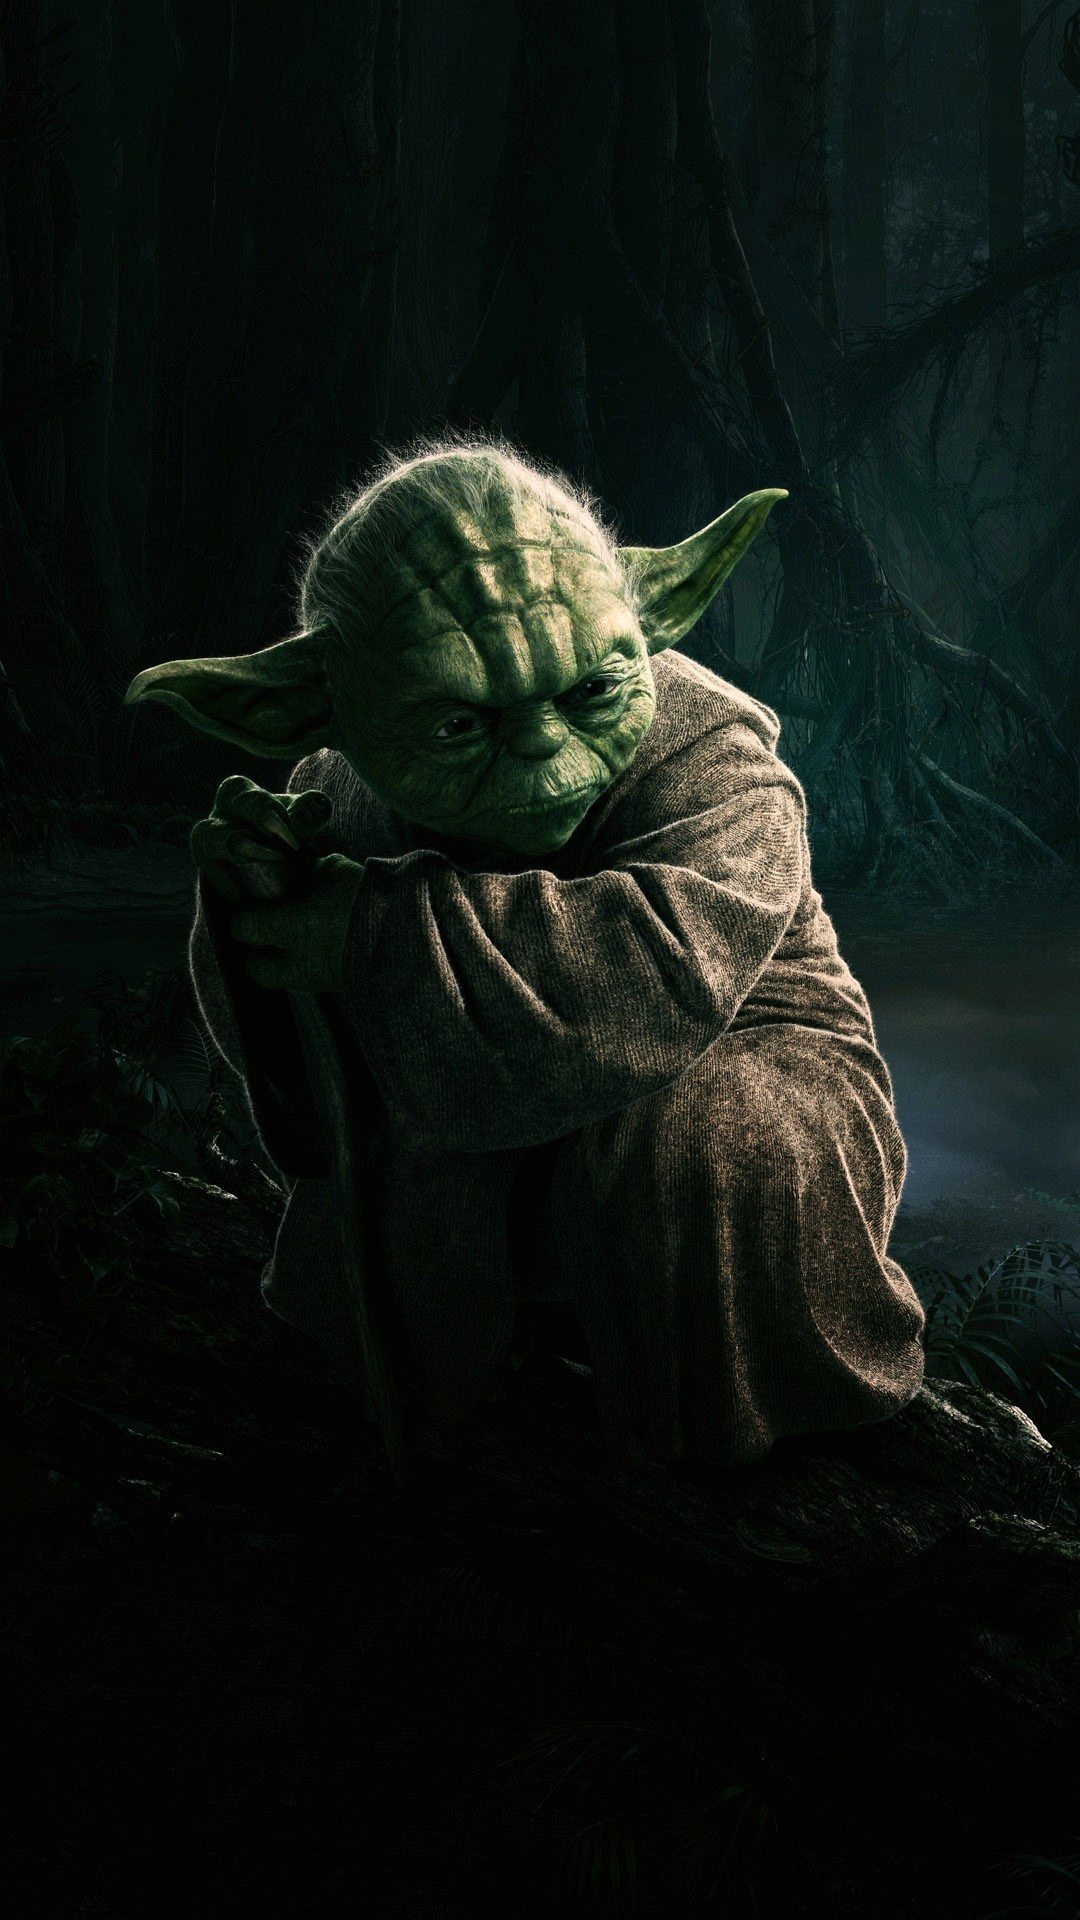 Yoda Star Wars Wallpaper photos of Epic Star Wars Iphone Wallpaper by 1080x1920